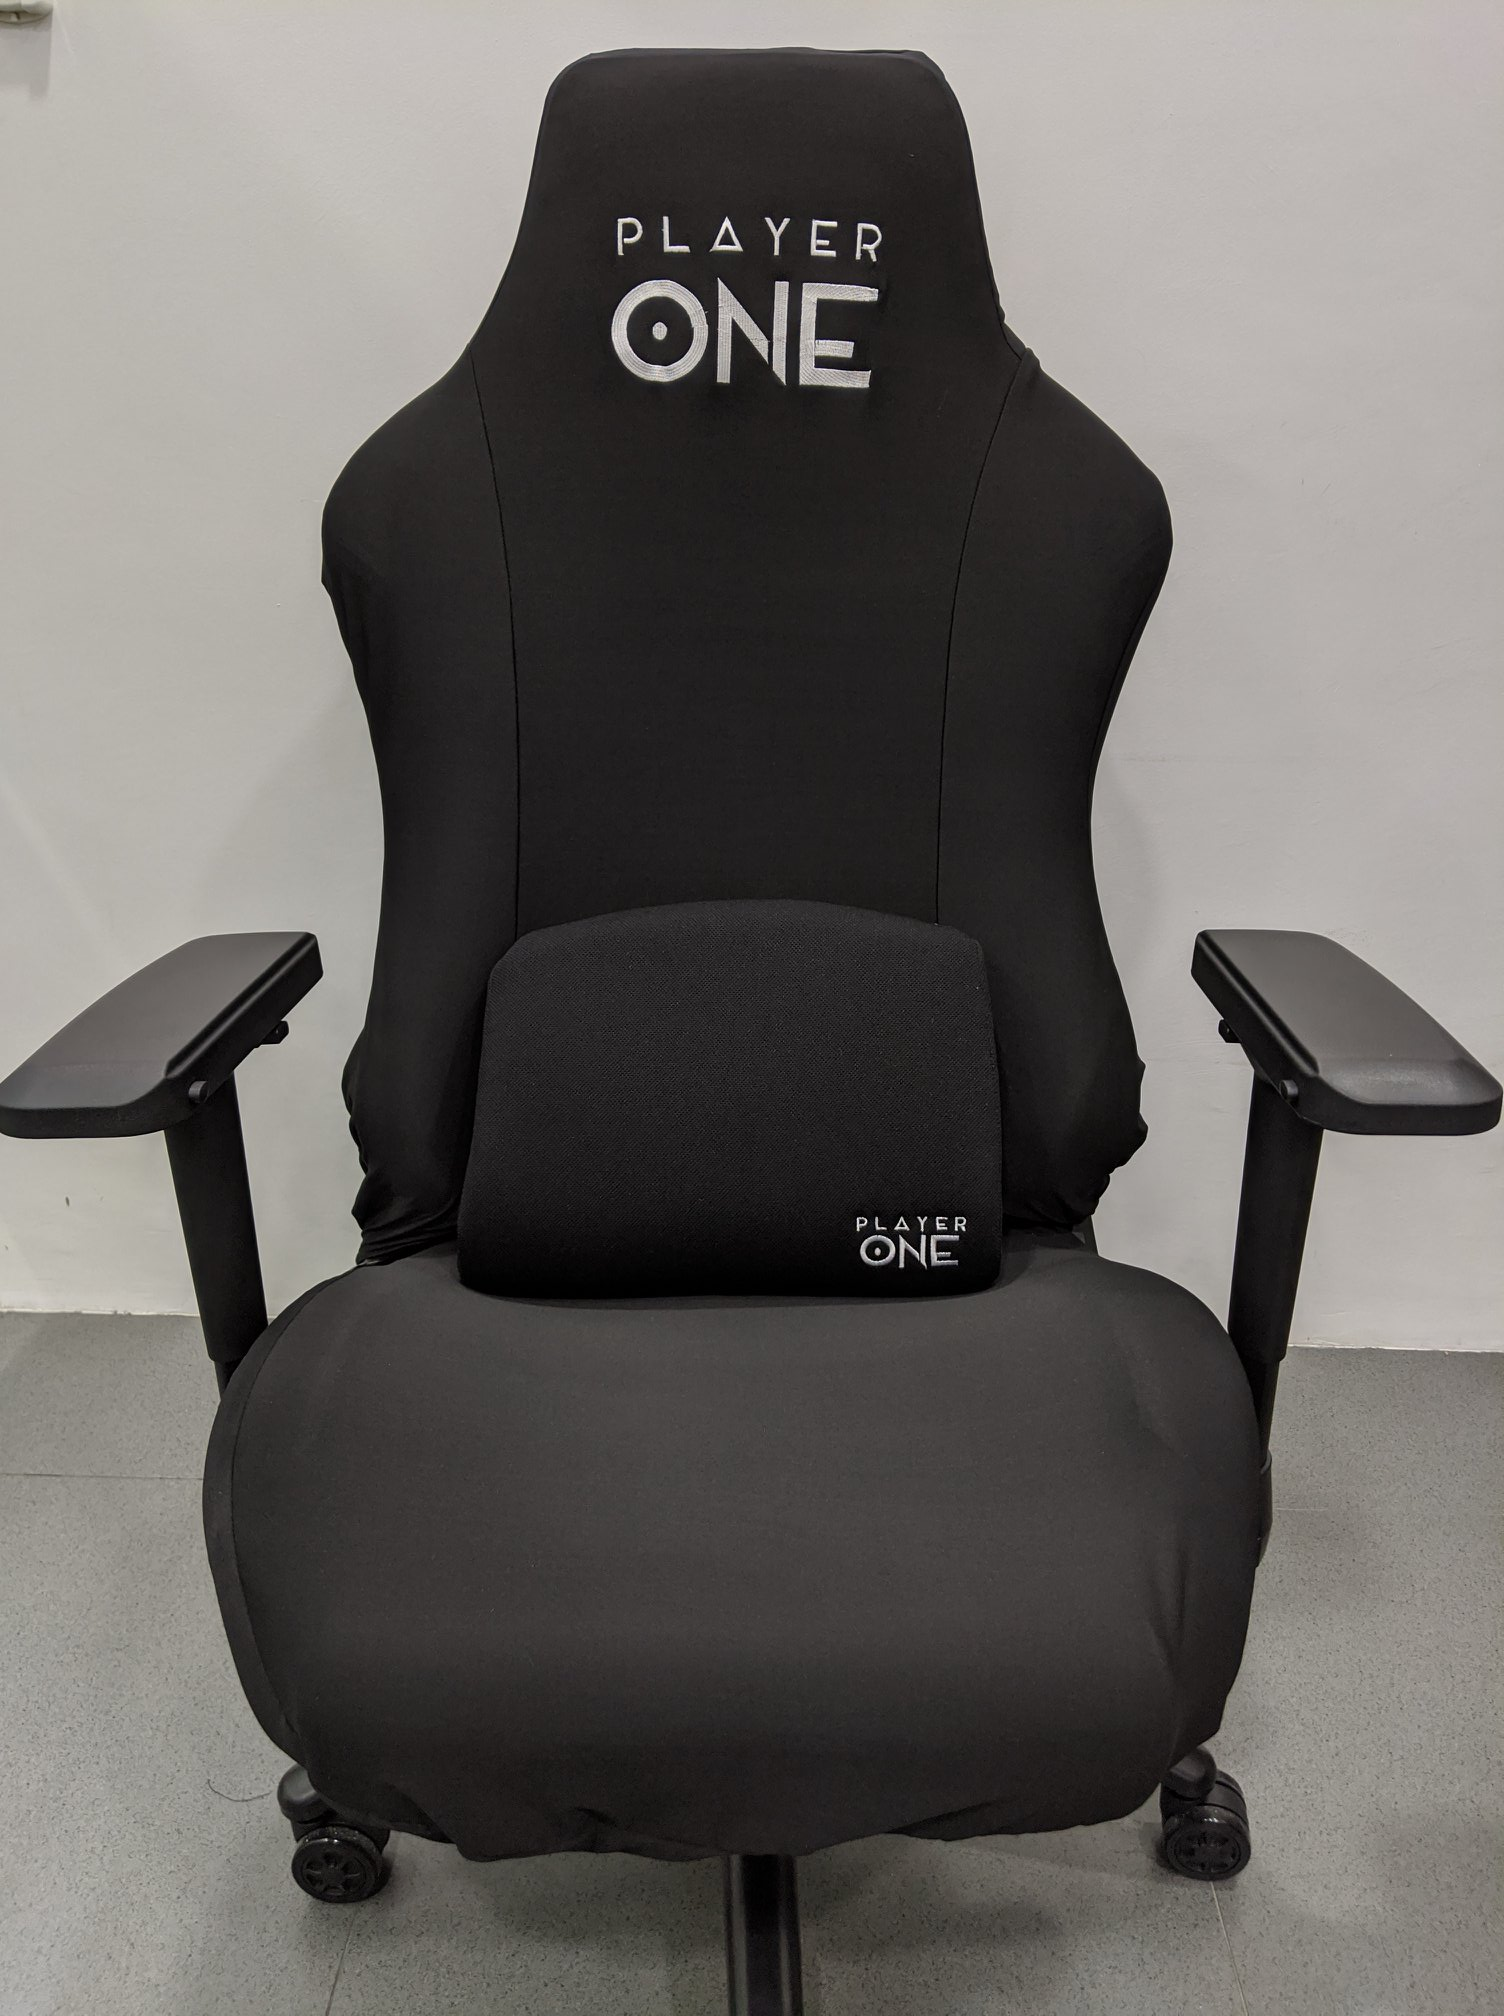 Player One Ghost v2 Gaming Chair Review - fabric cover